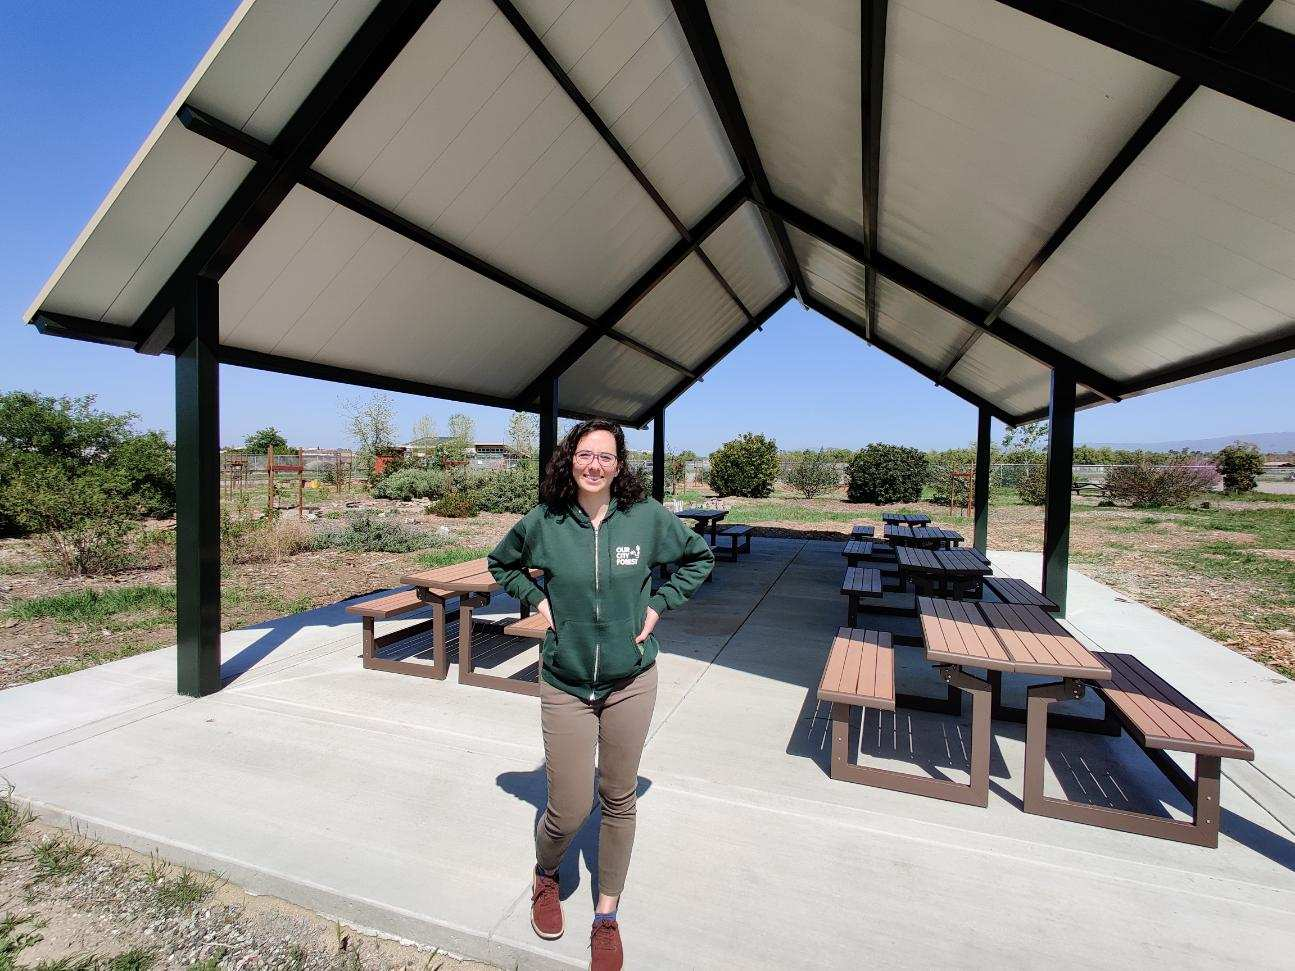 Our City Forest employee in green sweatshirt smiling and standing in front of outdoor pavilion with picnic tables